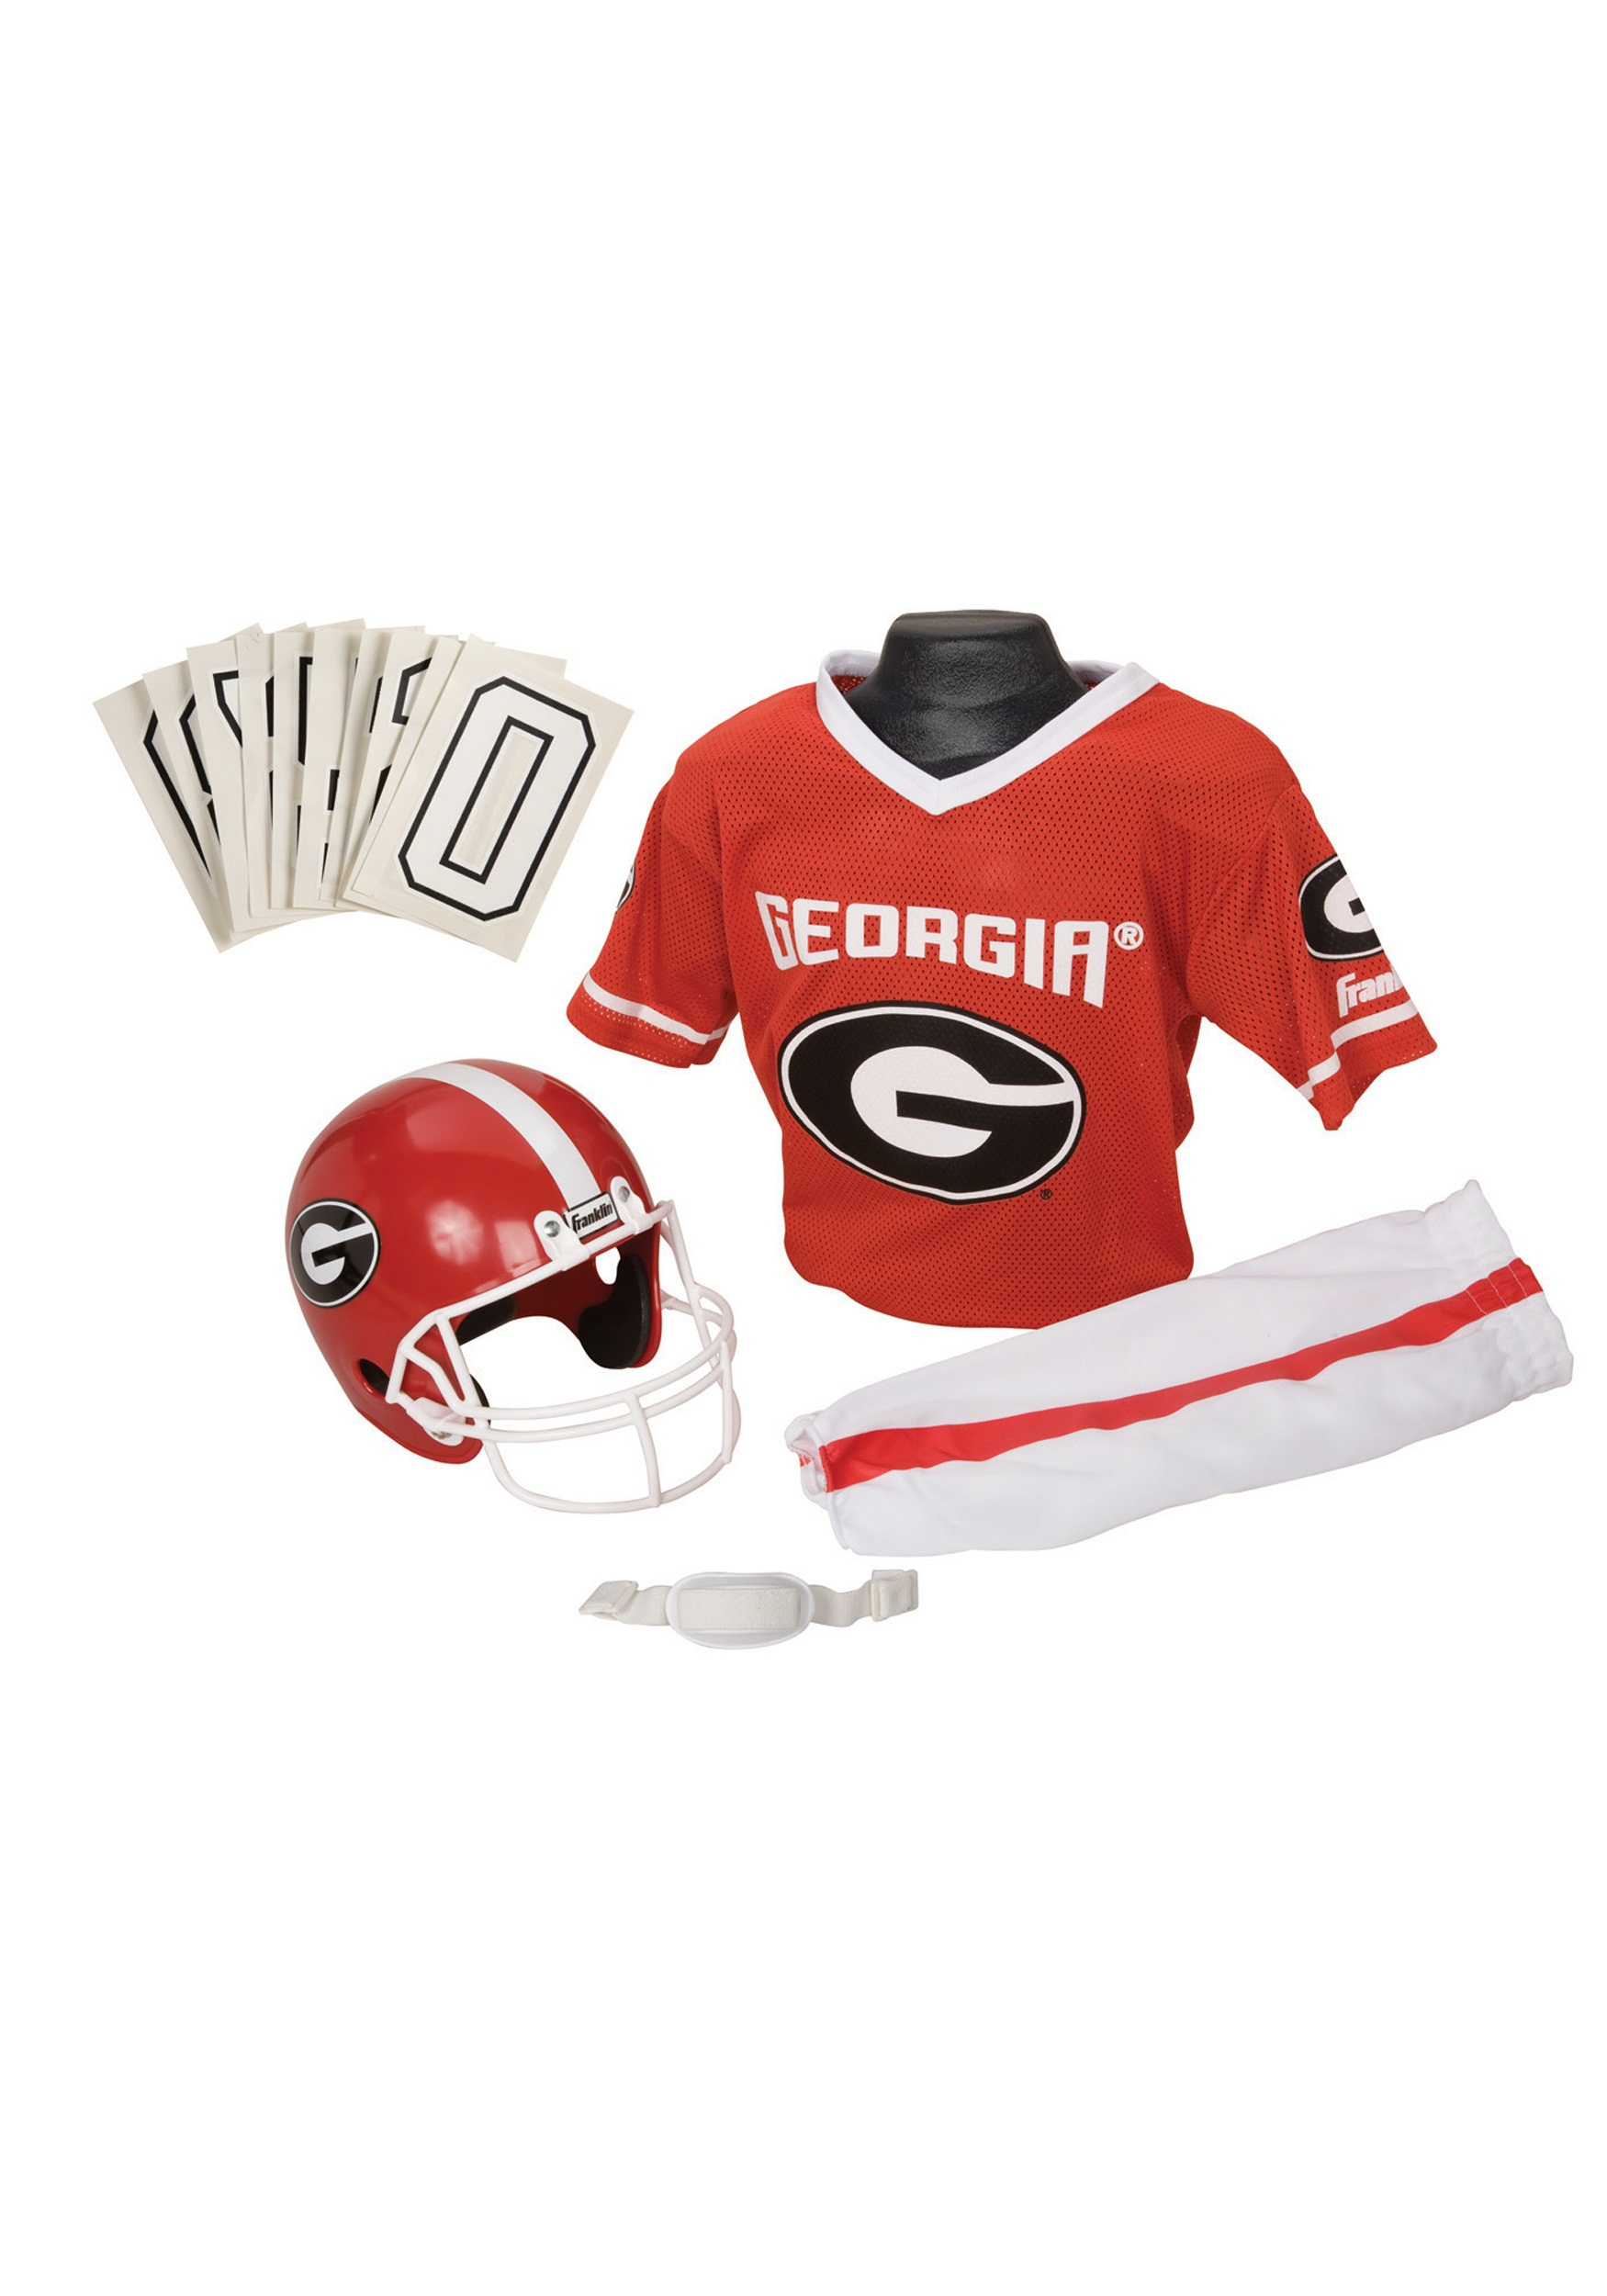 cheap for discount 6797c dadb3 Georgia Bulldogs Child Uniform Costume